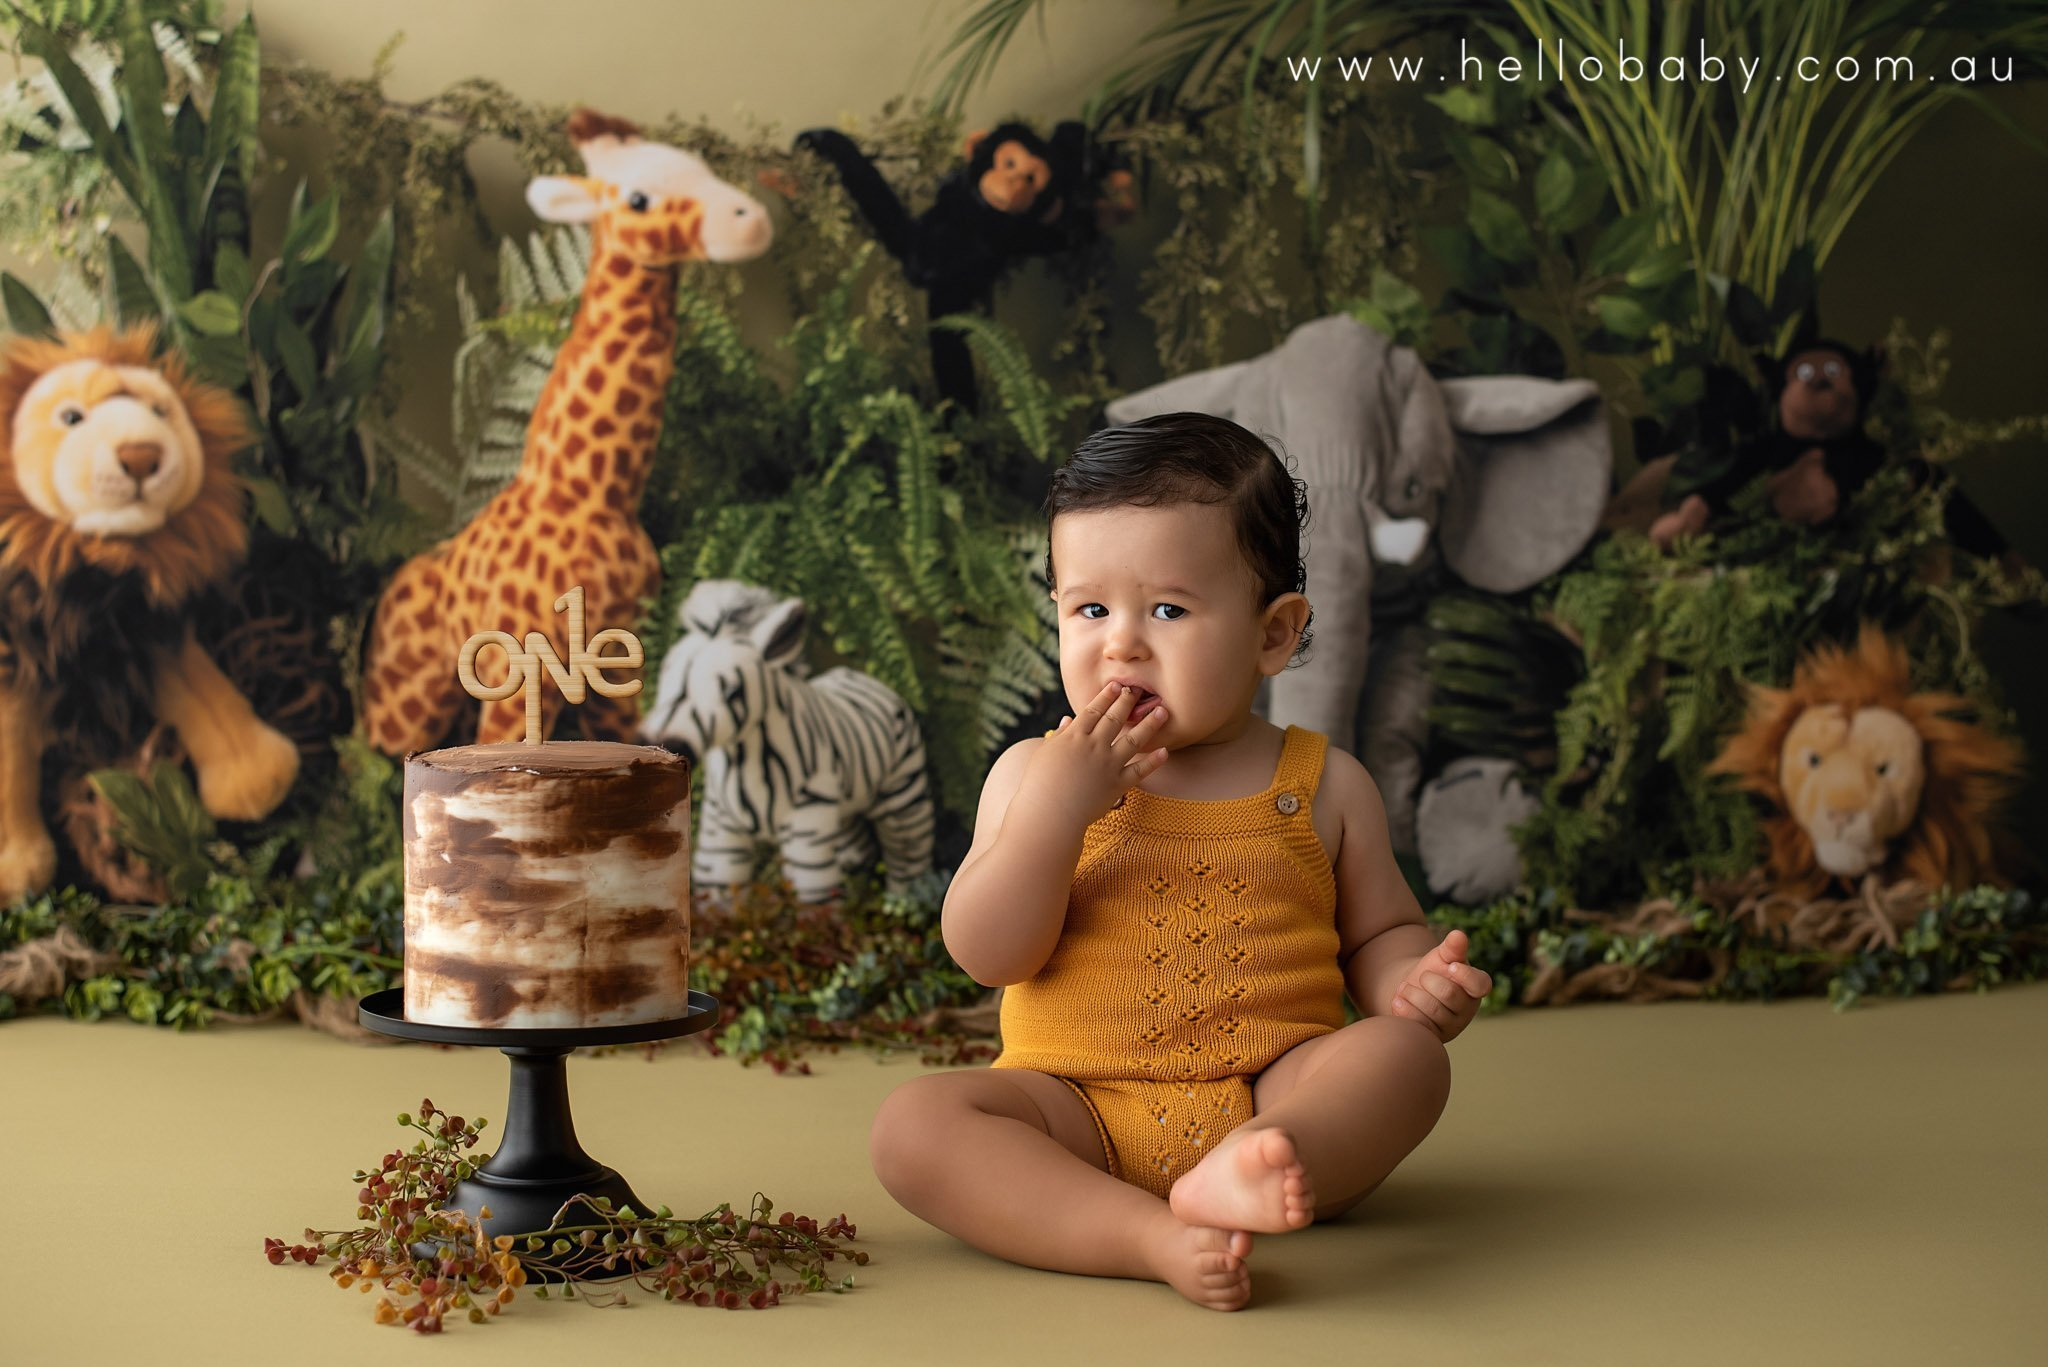 A sweet little baby boy around the age of 1 sitting on the ground next to a white and brown ombre birthday cake on a black cake stand. The little boy is wearing a mustard colour knitted romper. He has gorgeous black hair and is licking his fingers tasting the cake. in the background you can see a jungle theme with a giraffe, an elephant, two lions, a zebra and two monkeys.